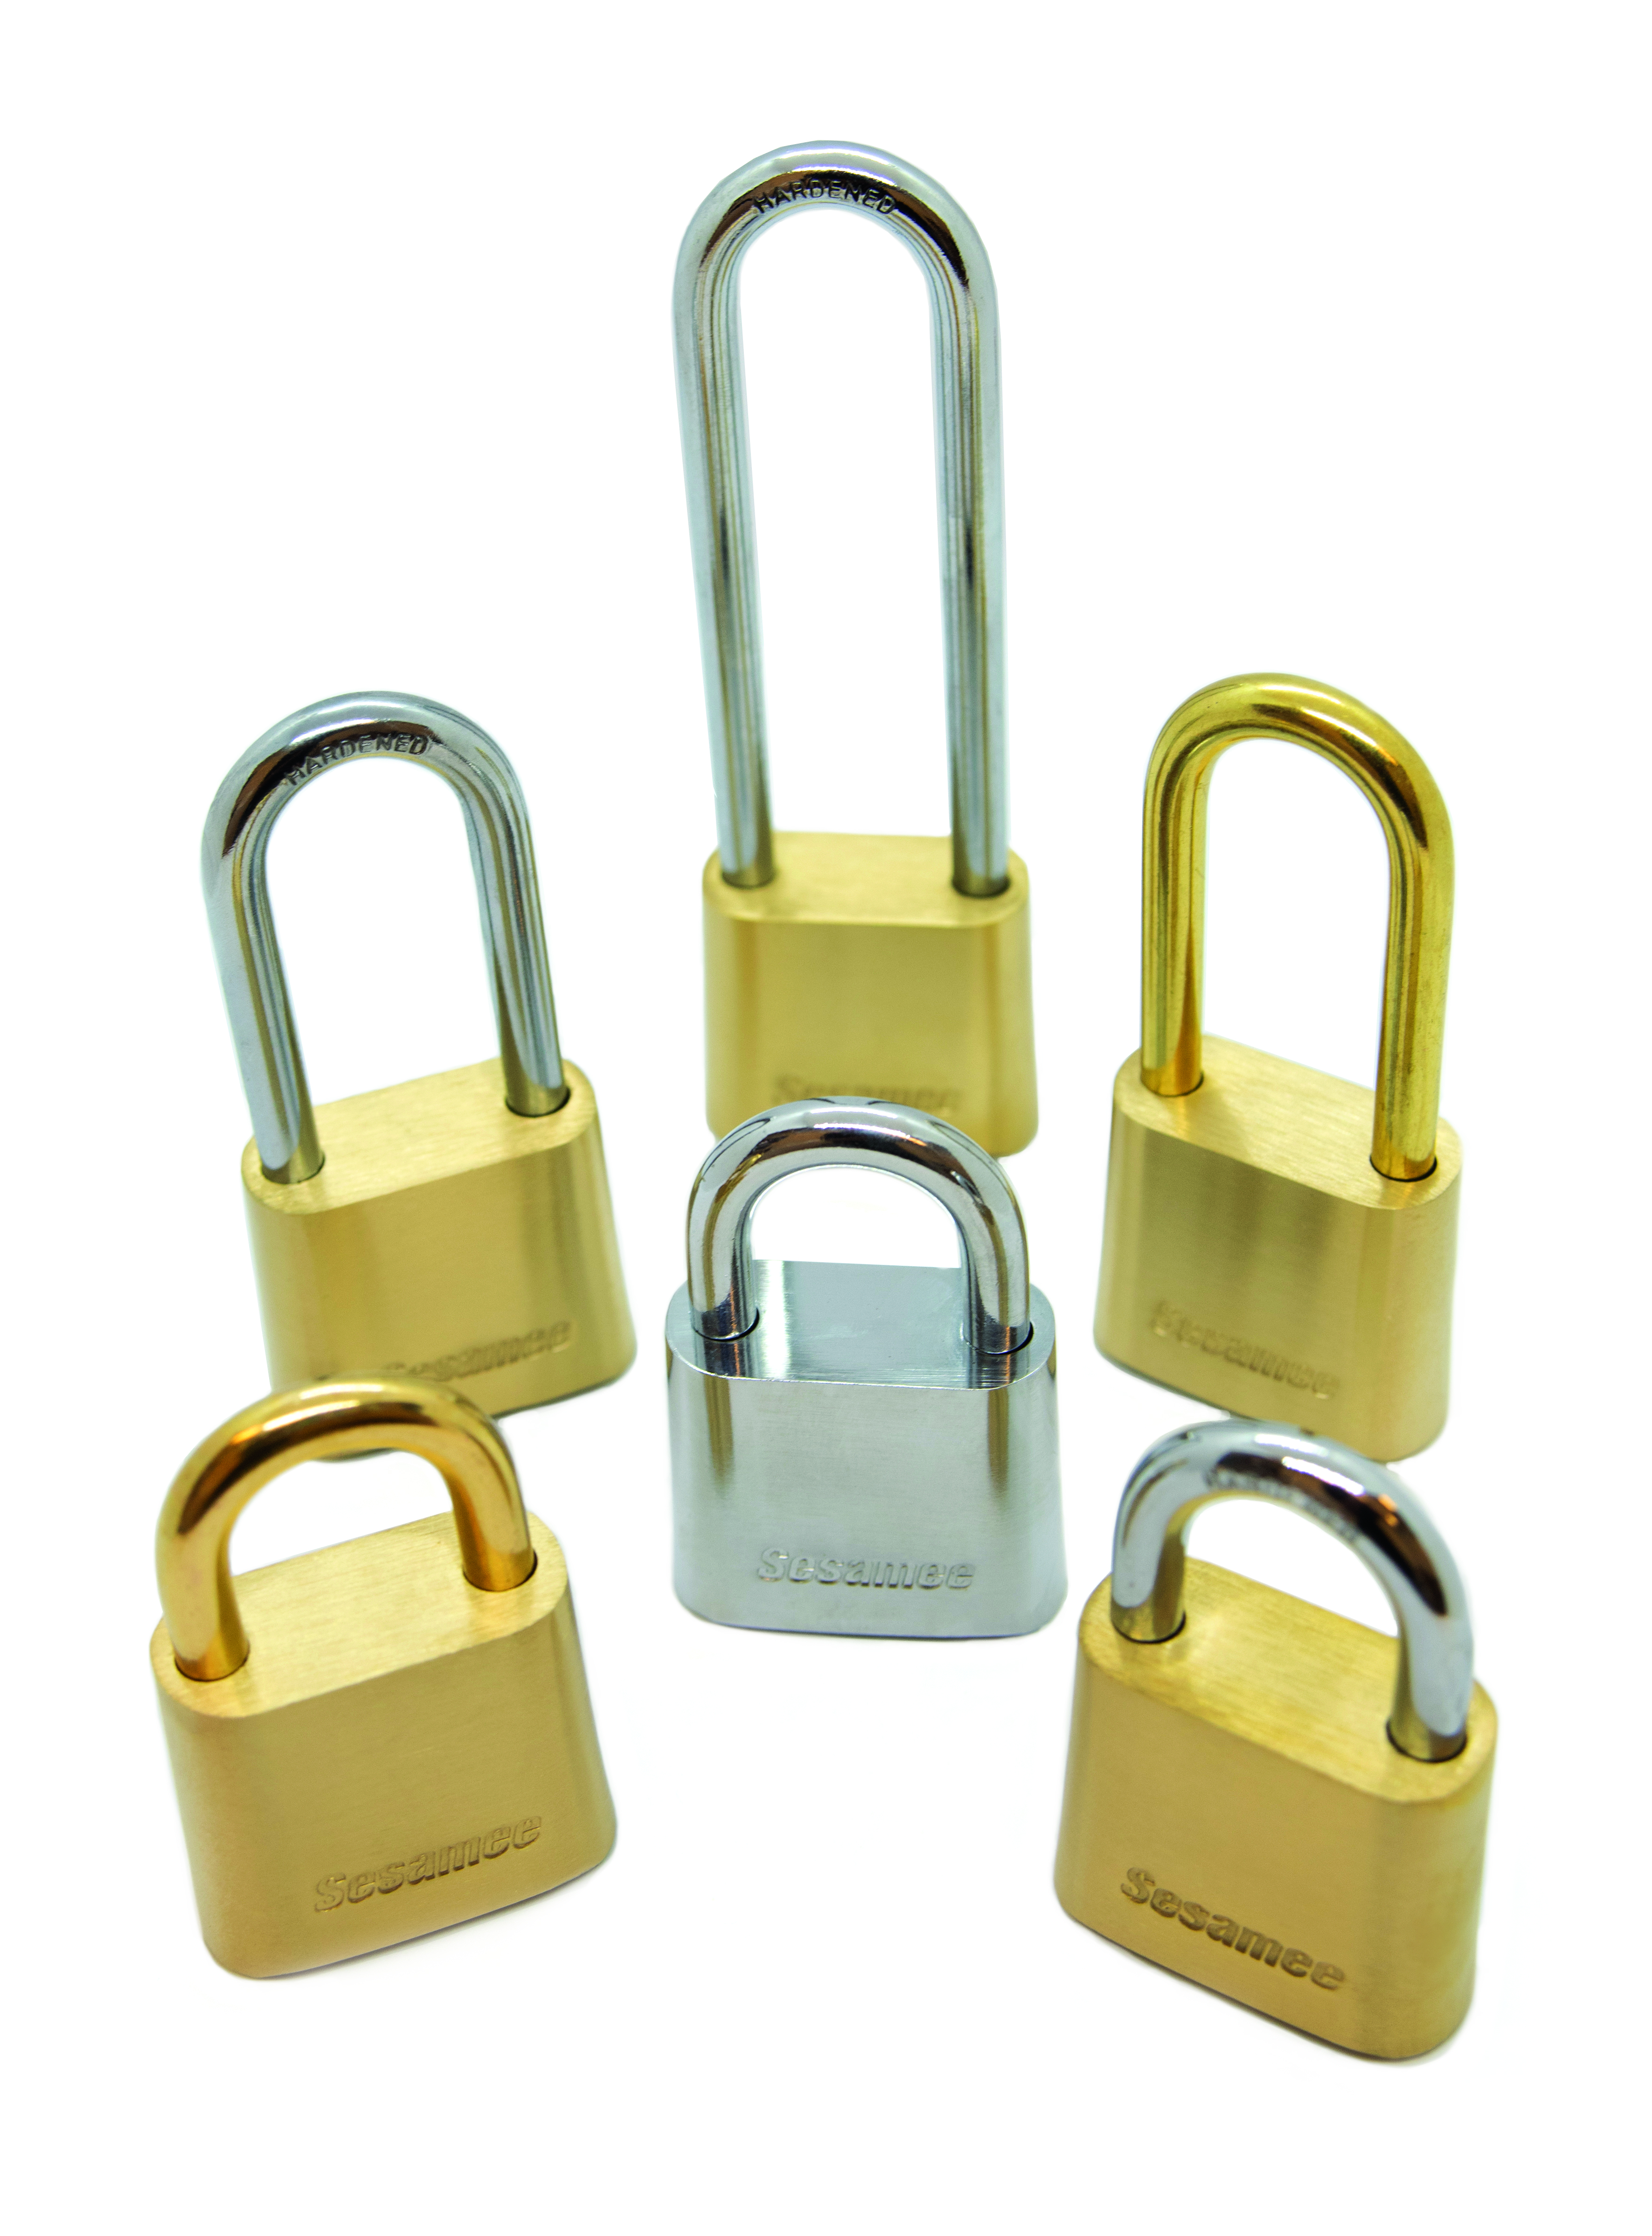 Sesamee 436/437 Series All Brass Dial Padlock 436